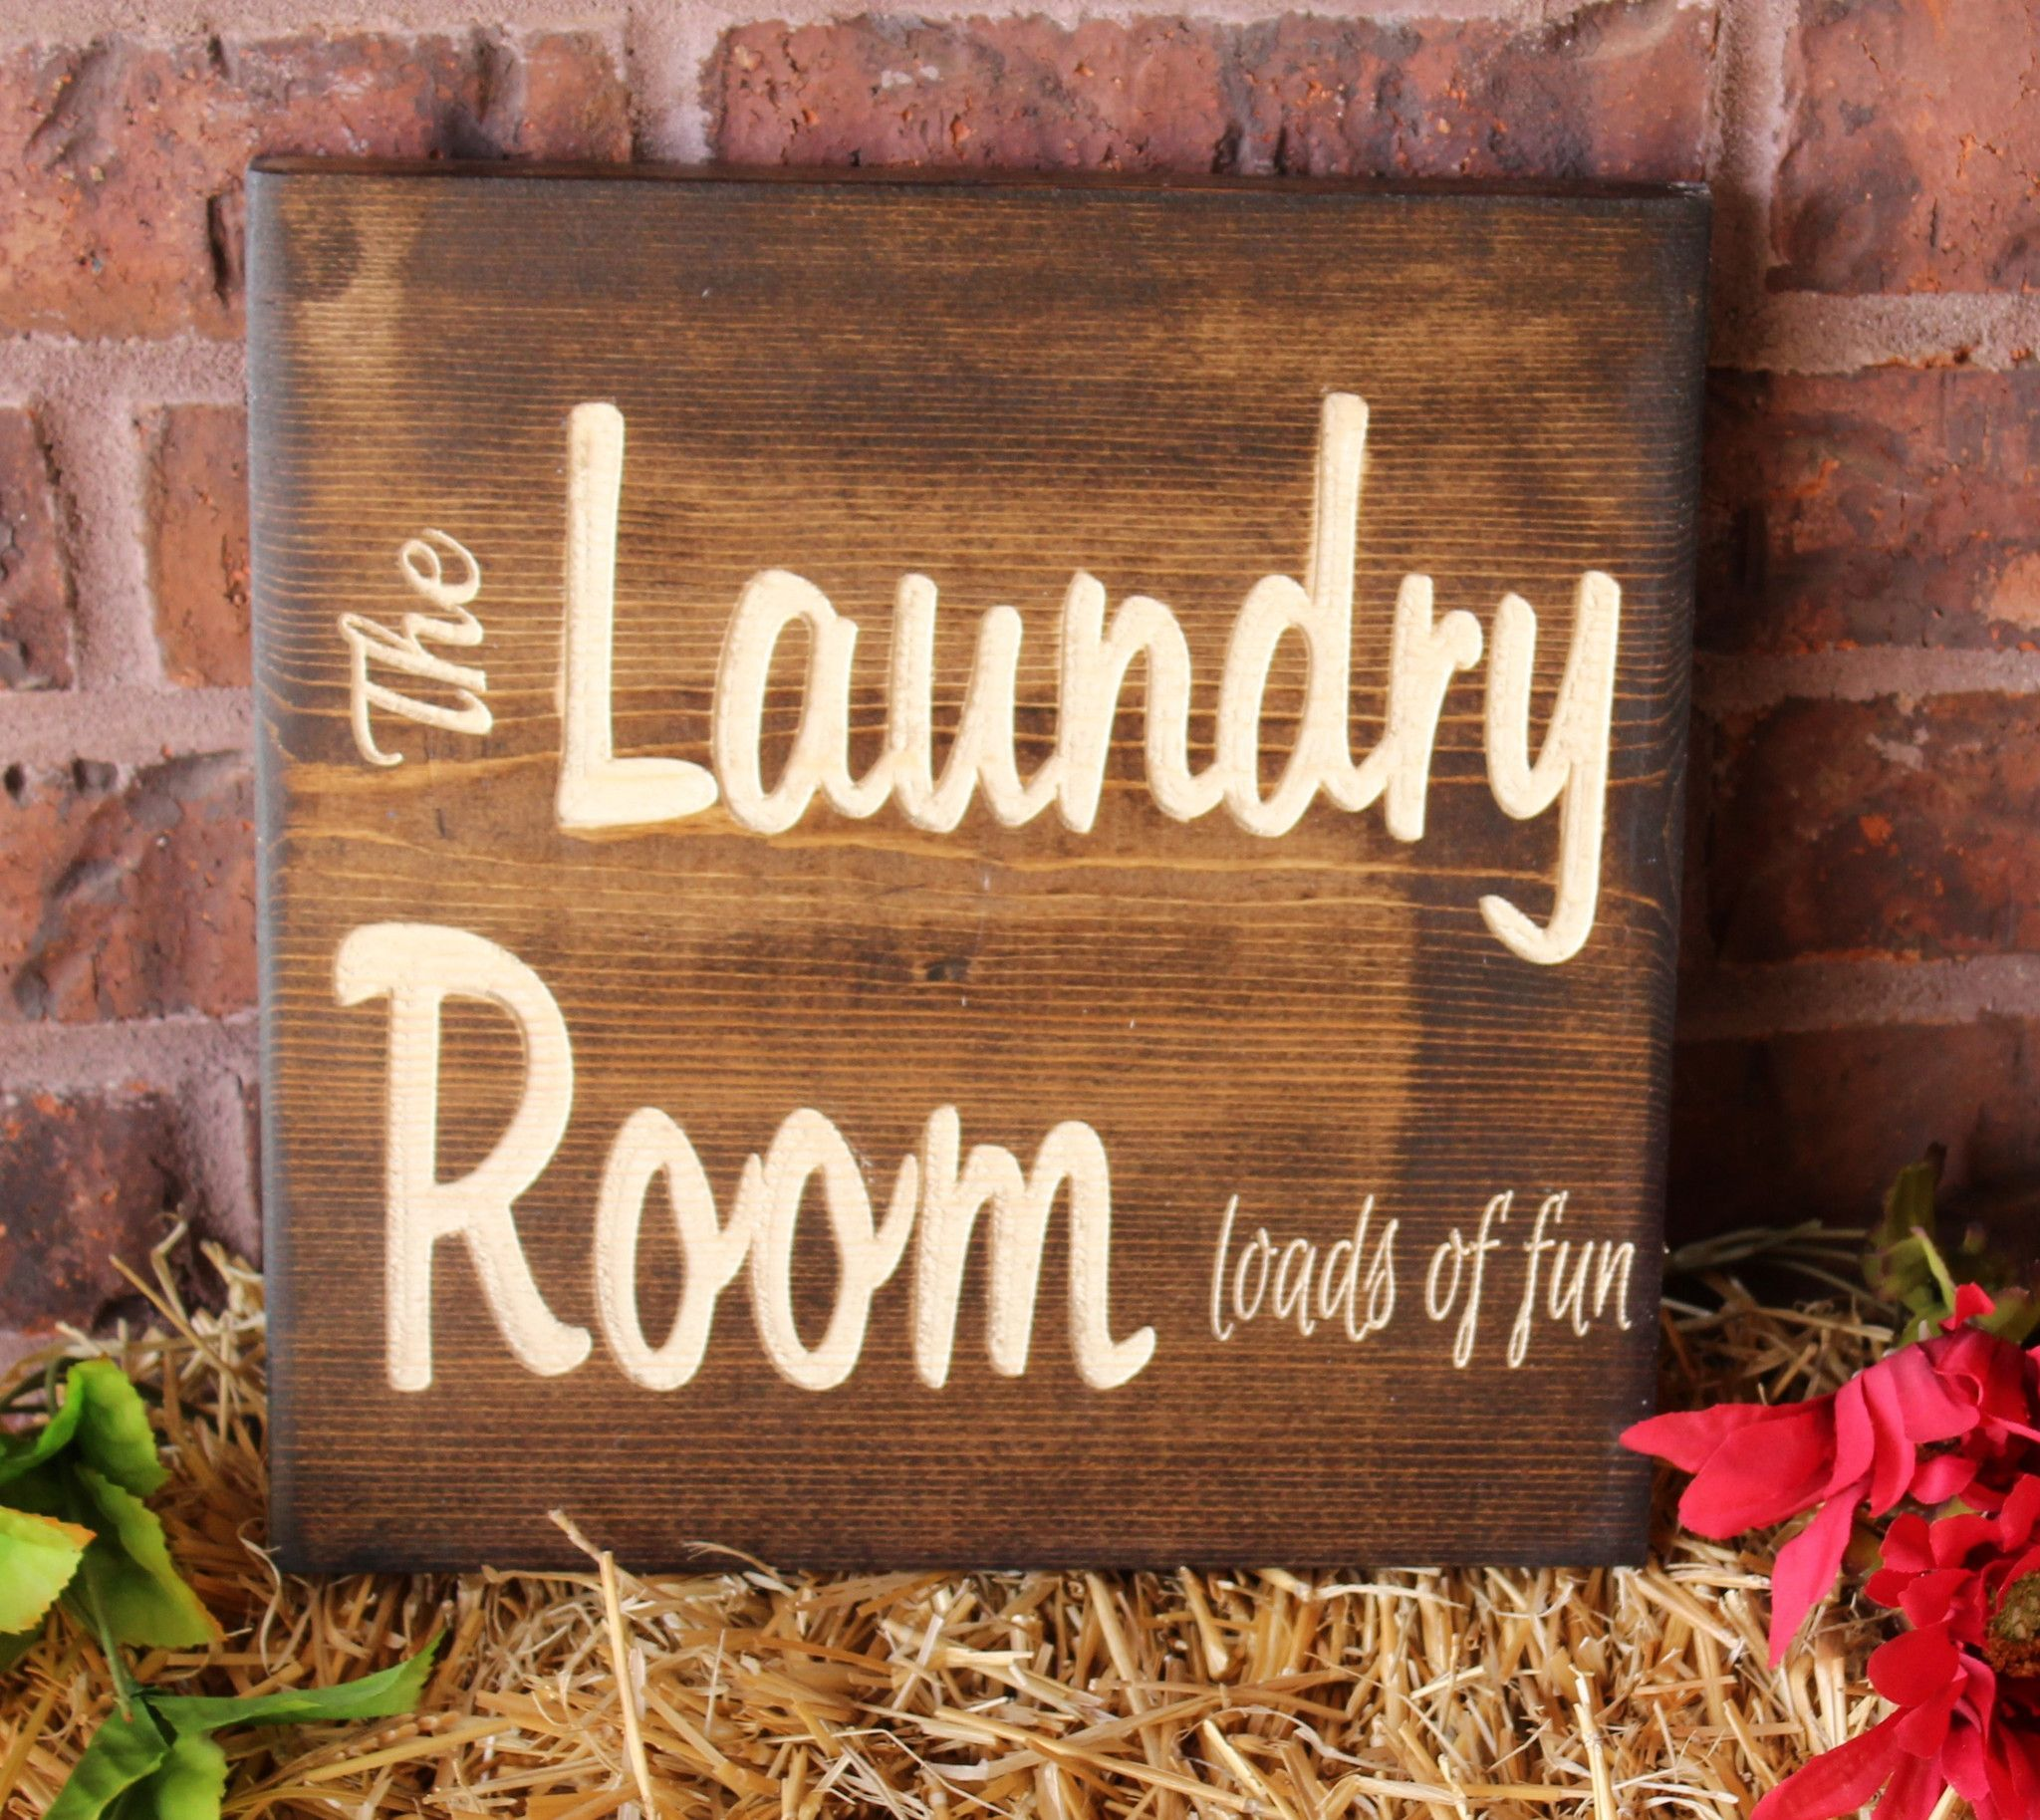 The Laundry Room Loads Of Fun Sign The Laundry Room Loads Of Fun Carved Wood Sign  Carved Wood Wood